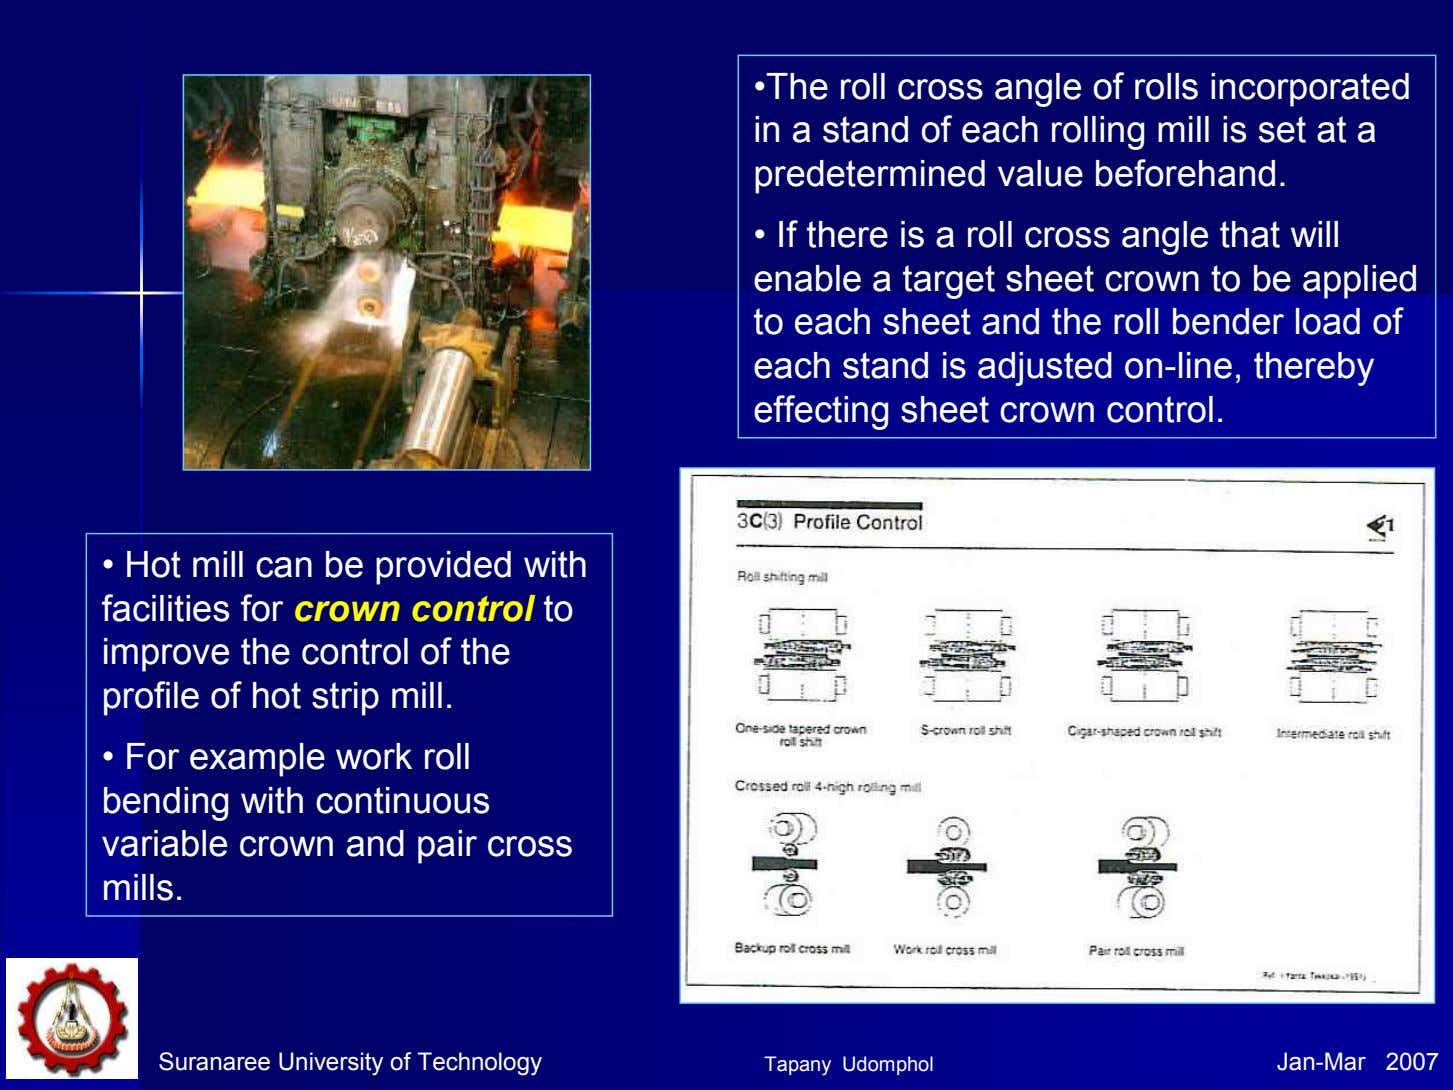 •The roll cross angle of rolls incorporated in a stand of each rolling mill is